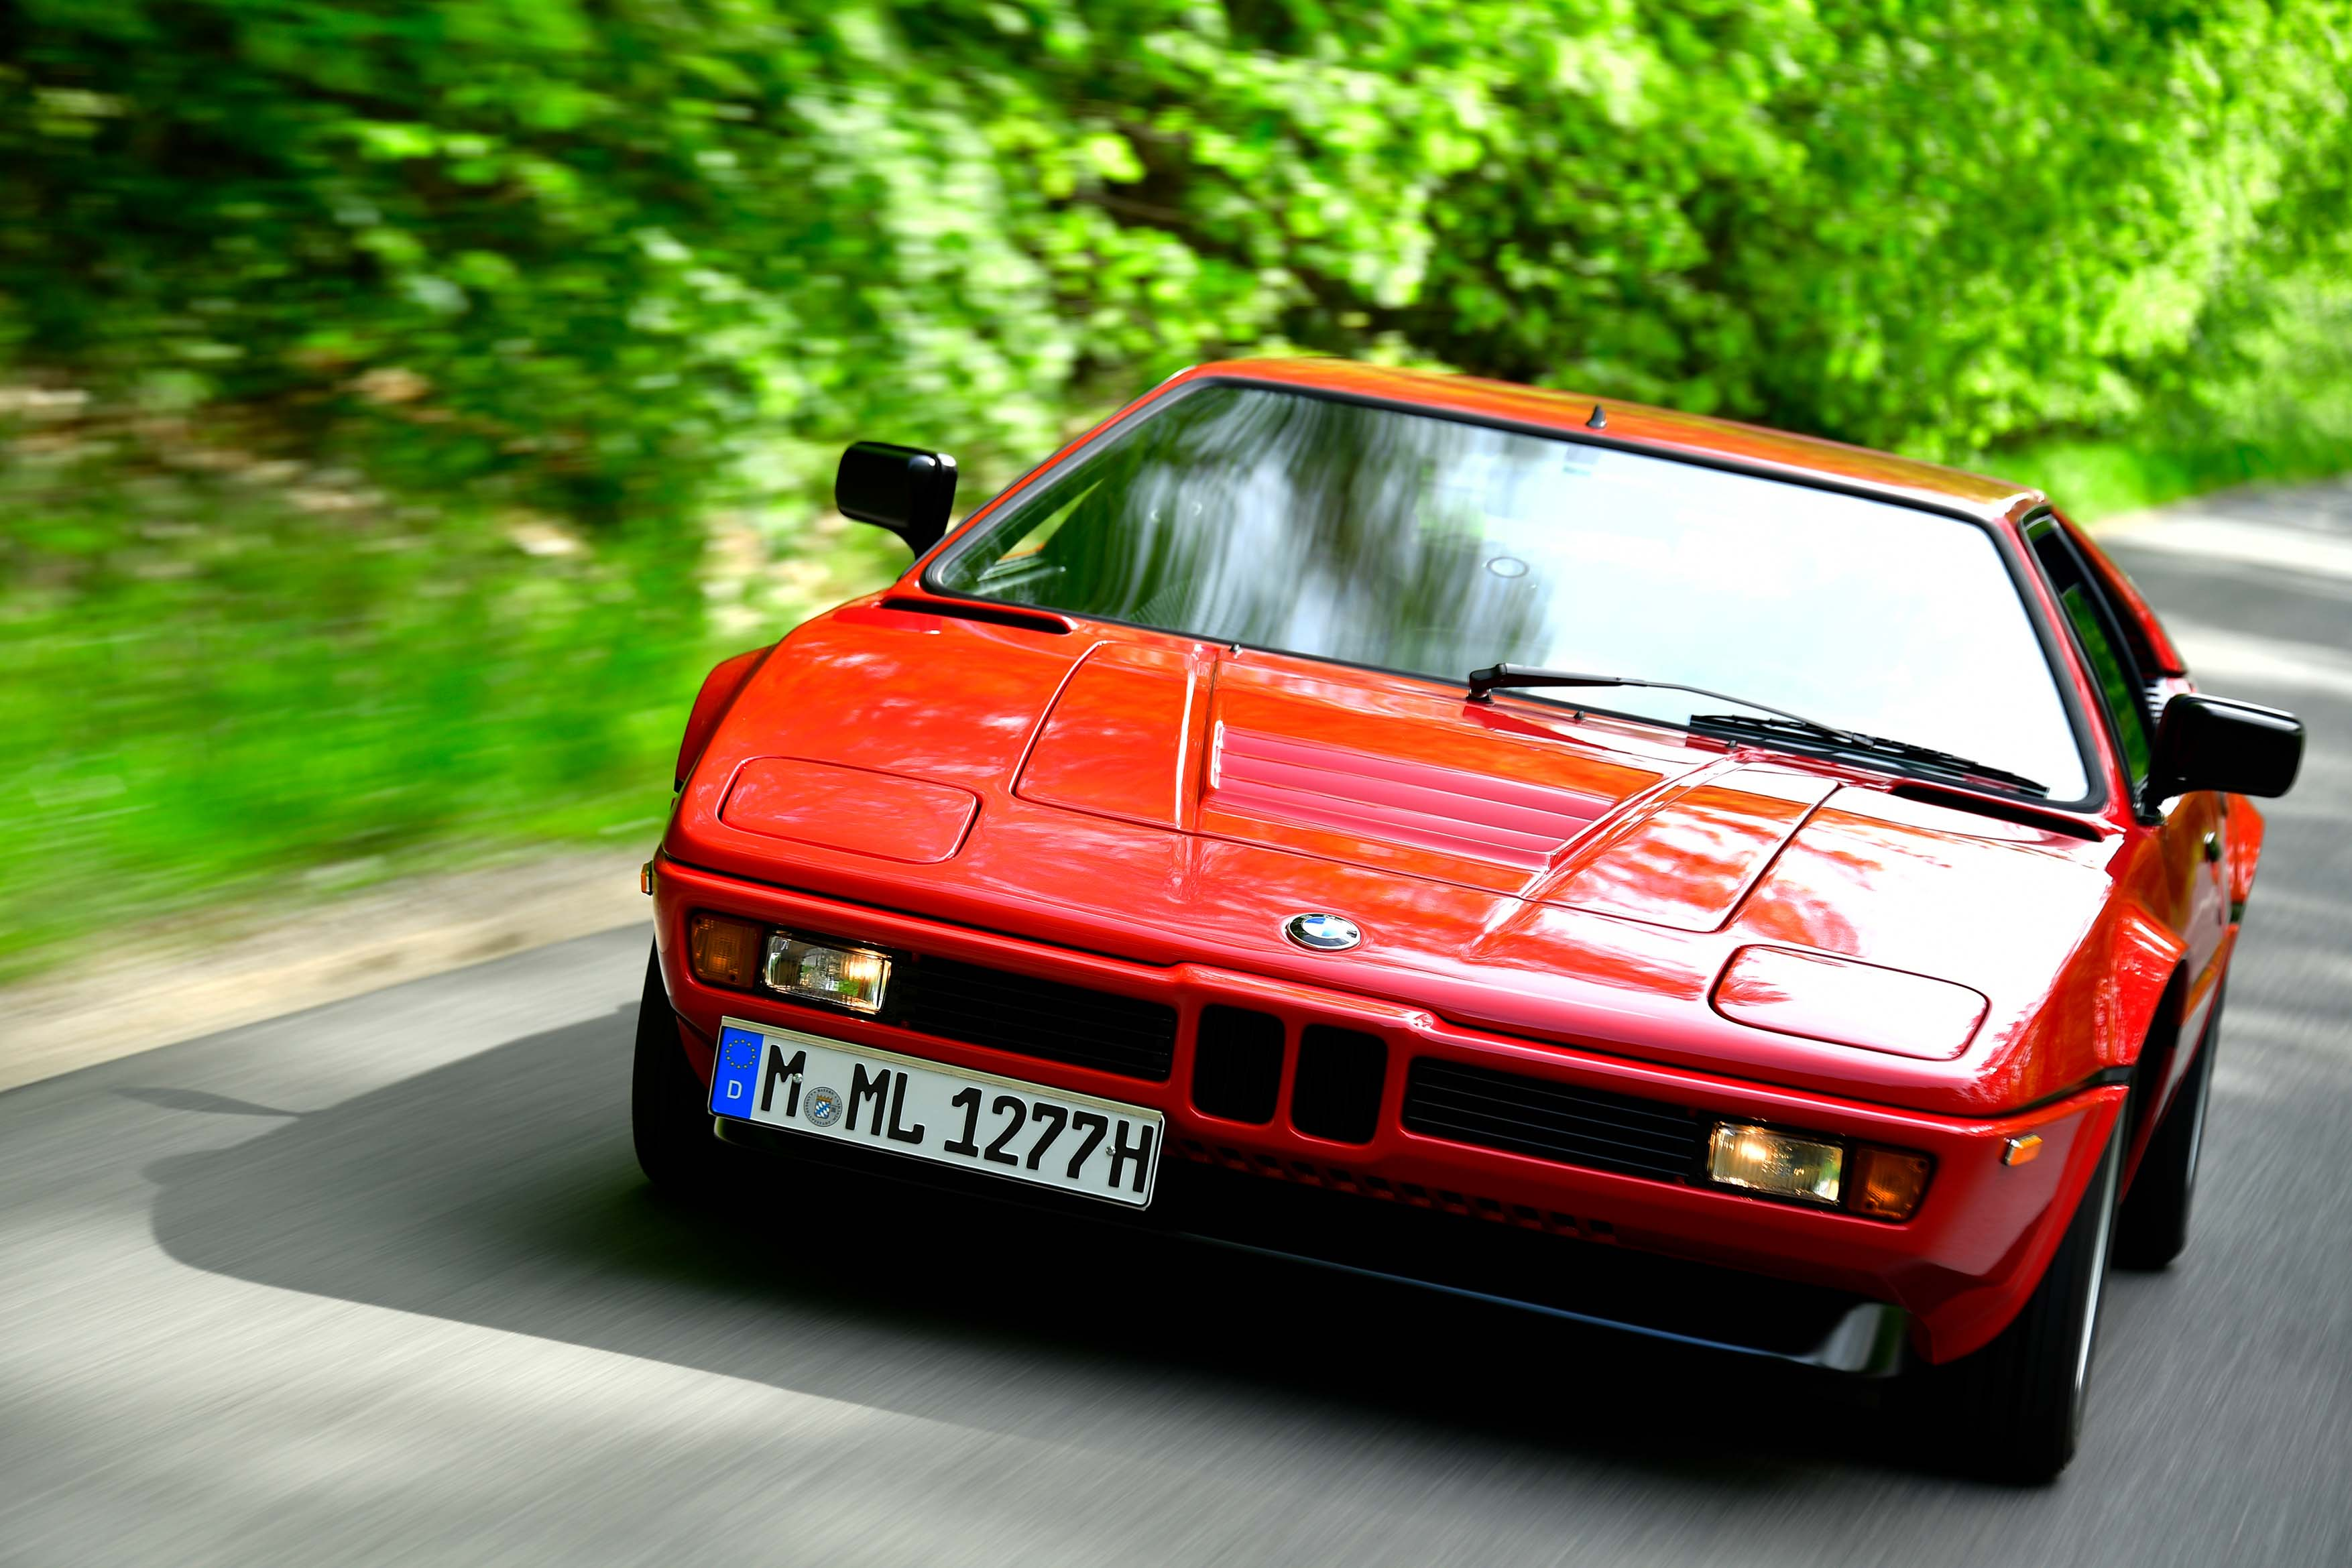 BMW M1 on road green trees background